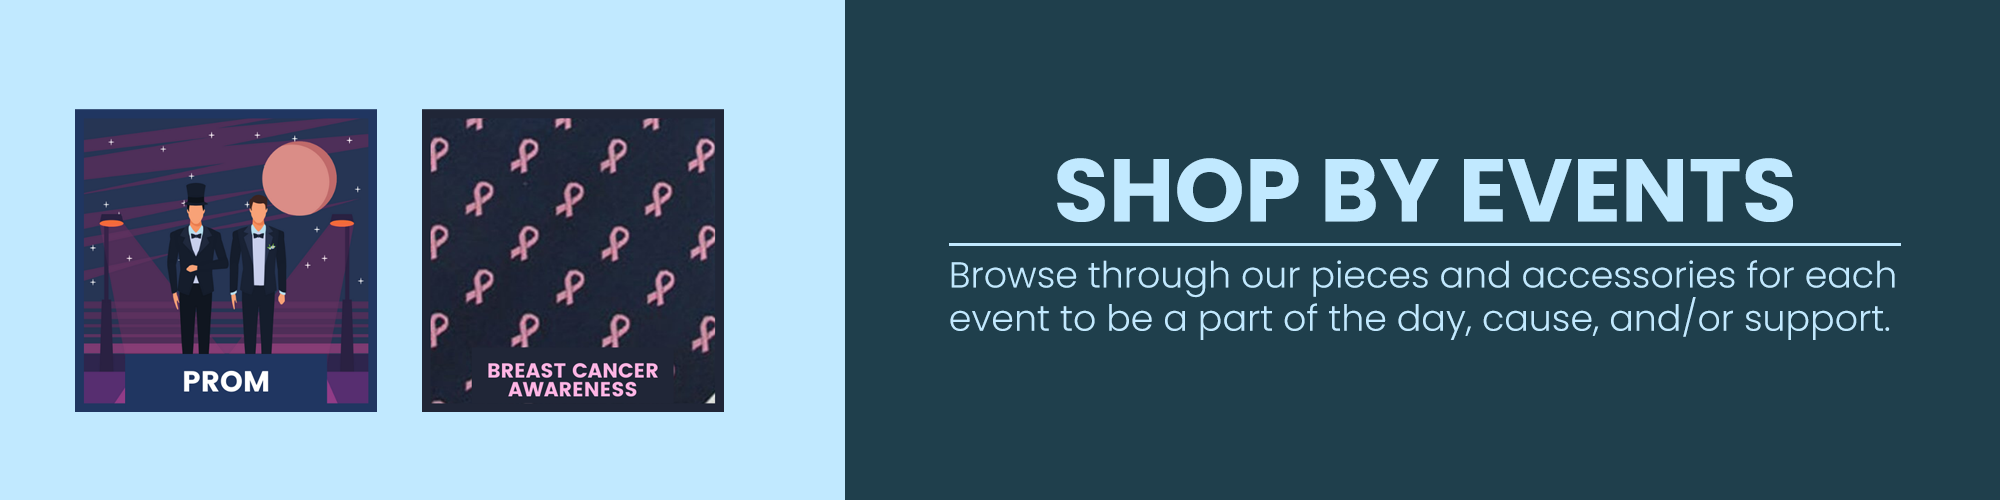 SHOP BY EVENTS